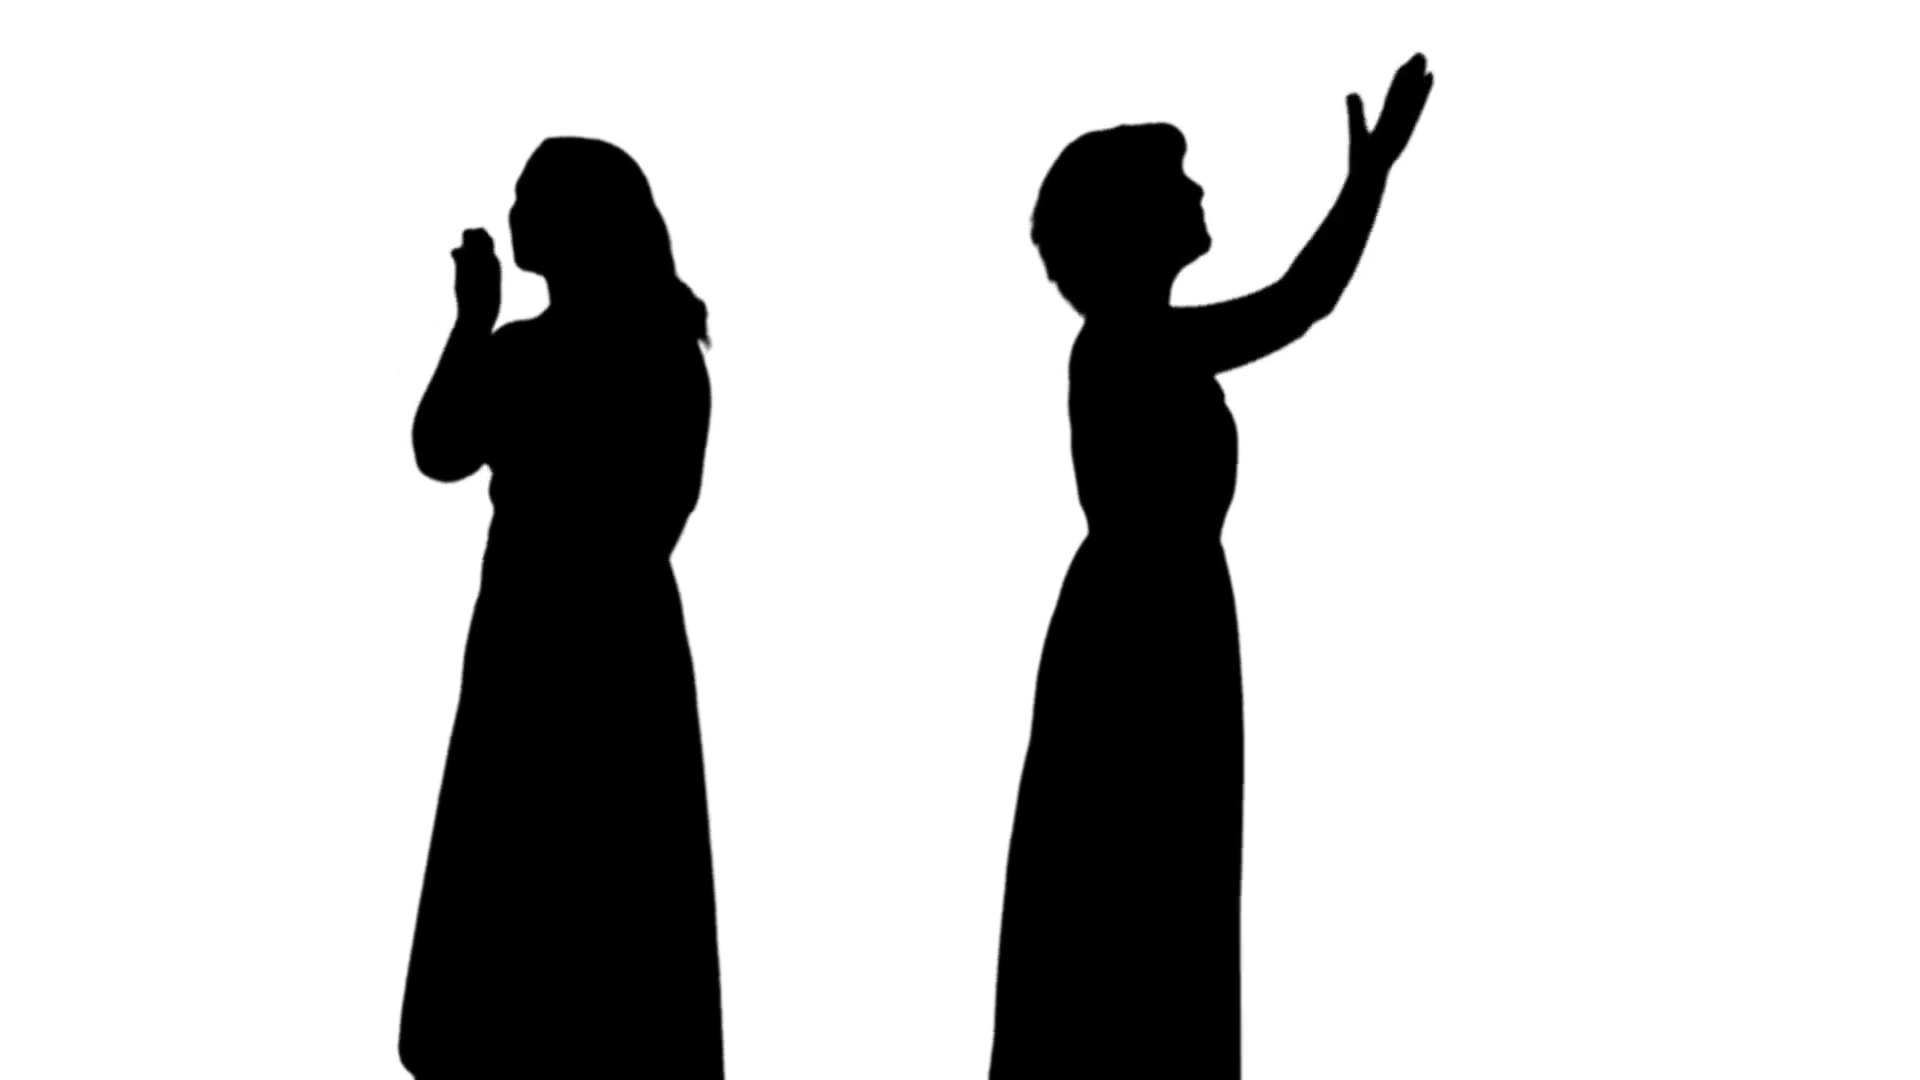 1920x1080 Silhouette Of Two Woman Waving Their Hands To The Audience